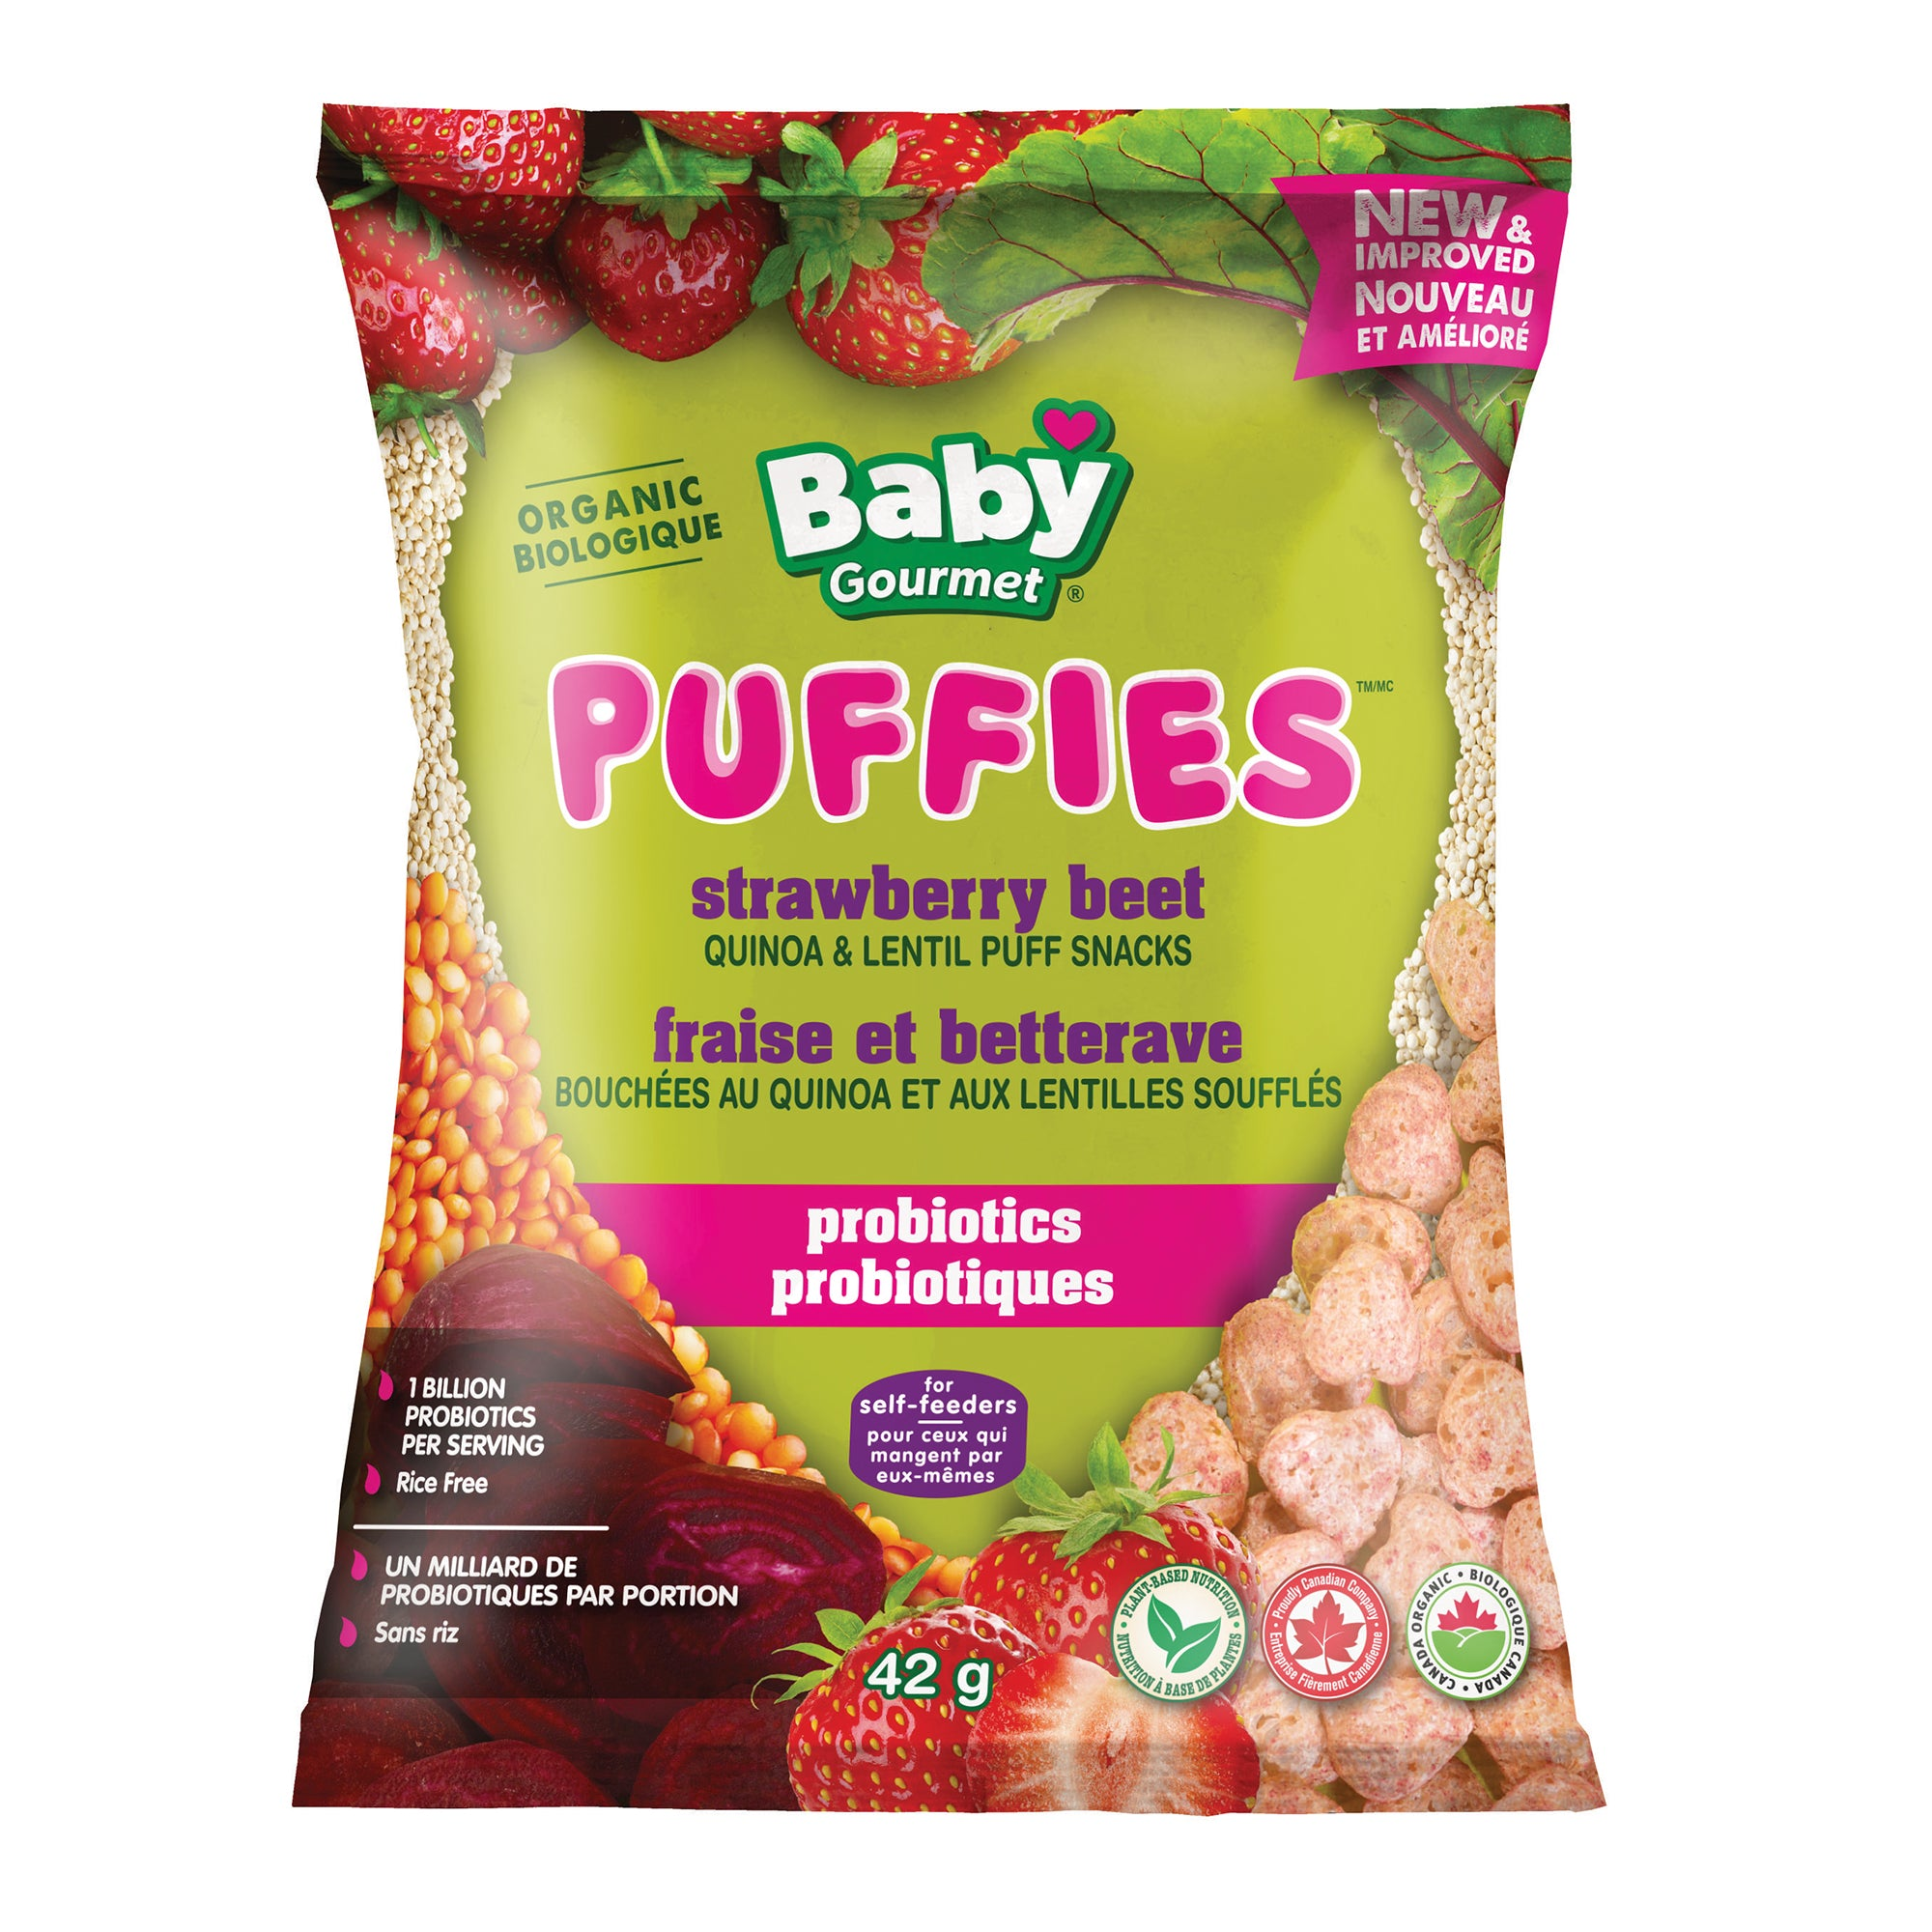 strawberry beet Puffies